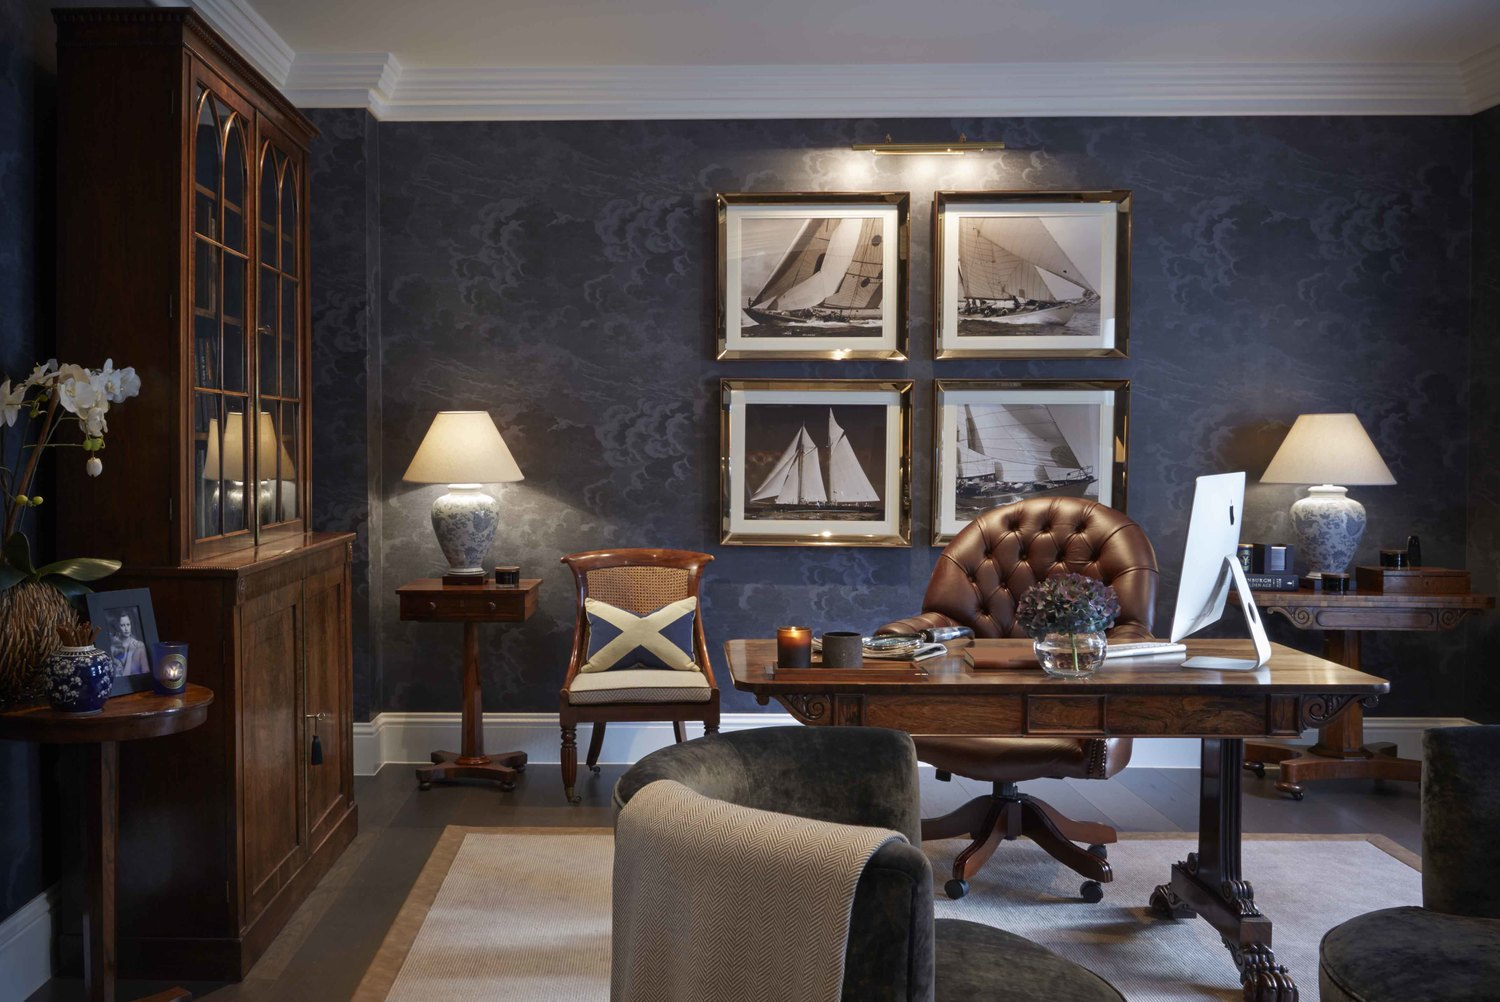 Sophie paterson interiors for Interior designs london